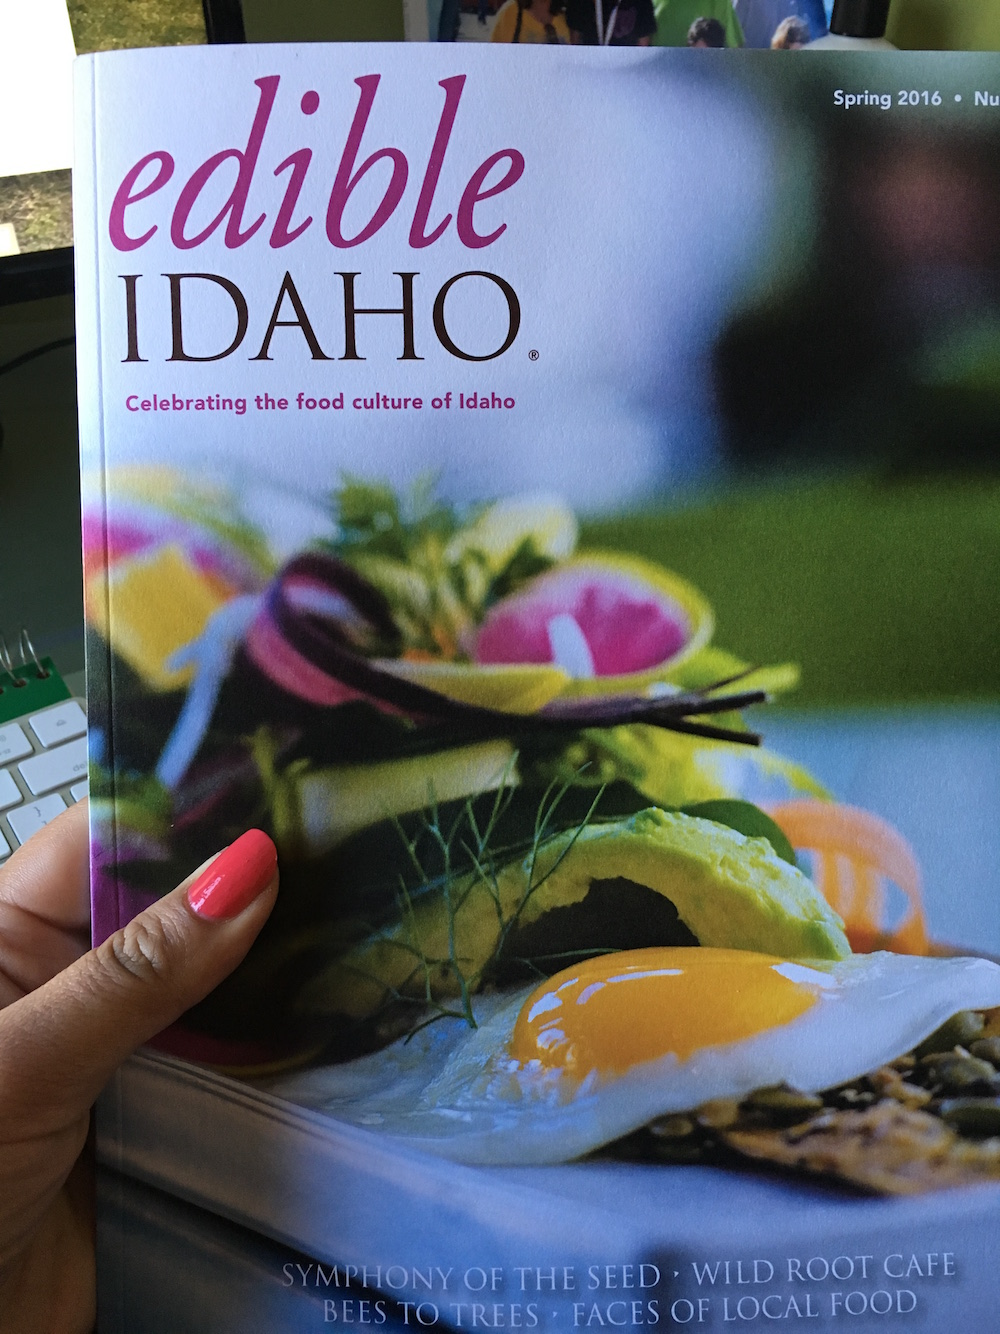 Heartwarming review in Edible Idaho